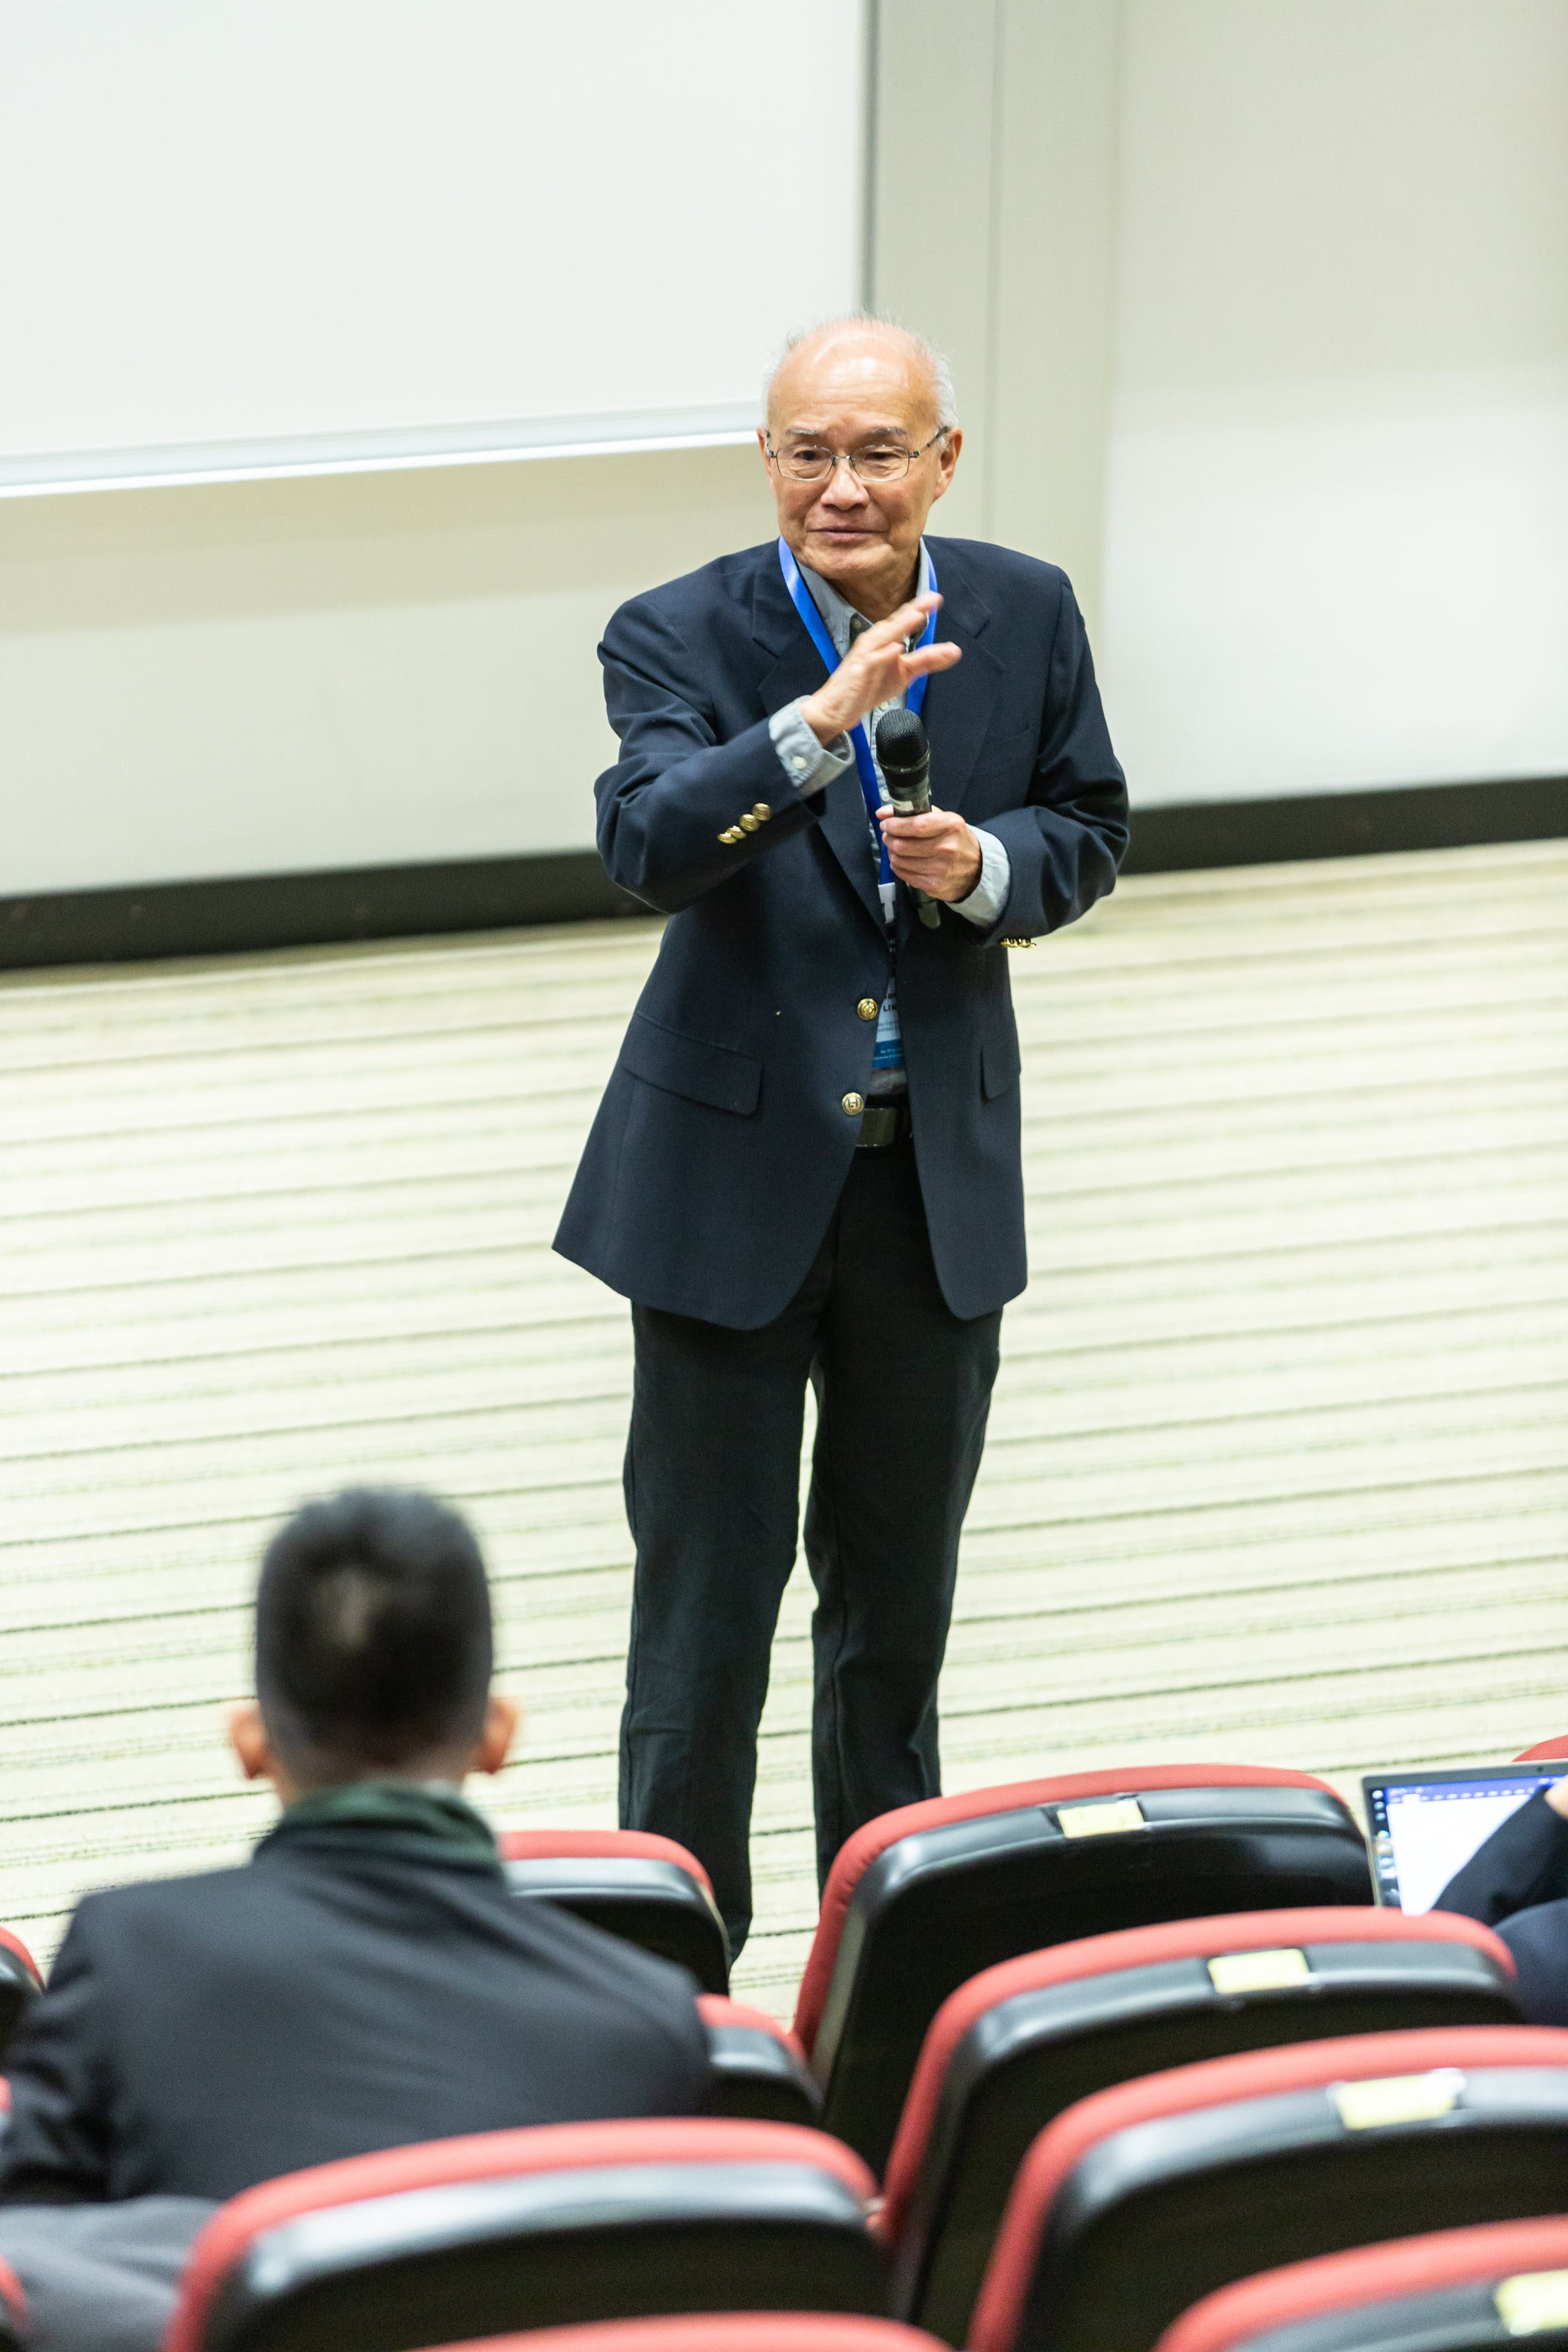 Man Standing in Front of Chairs and People